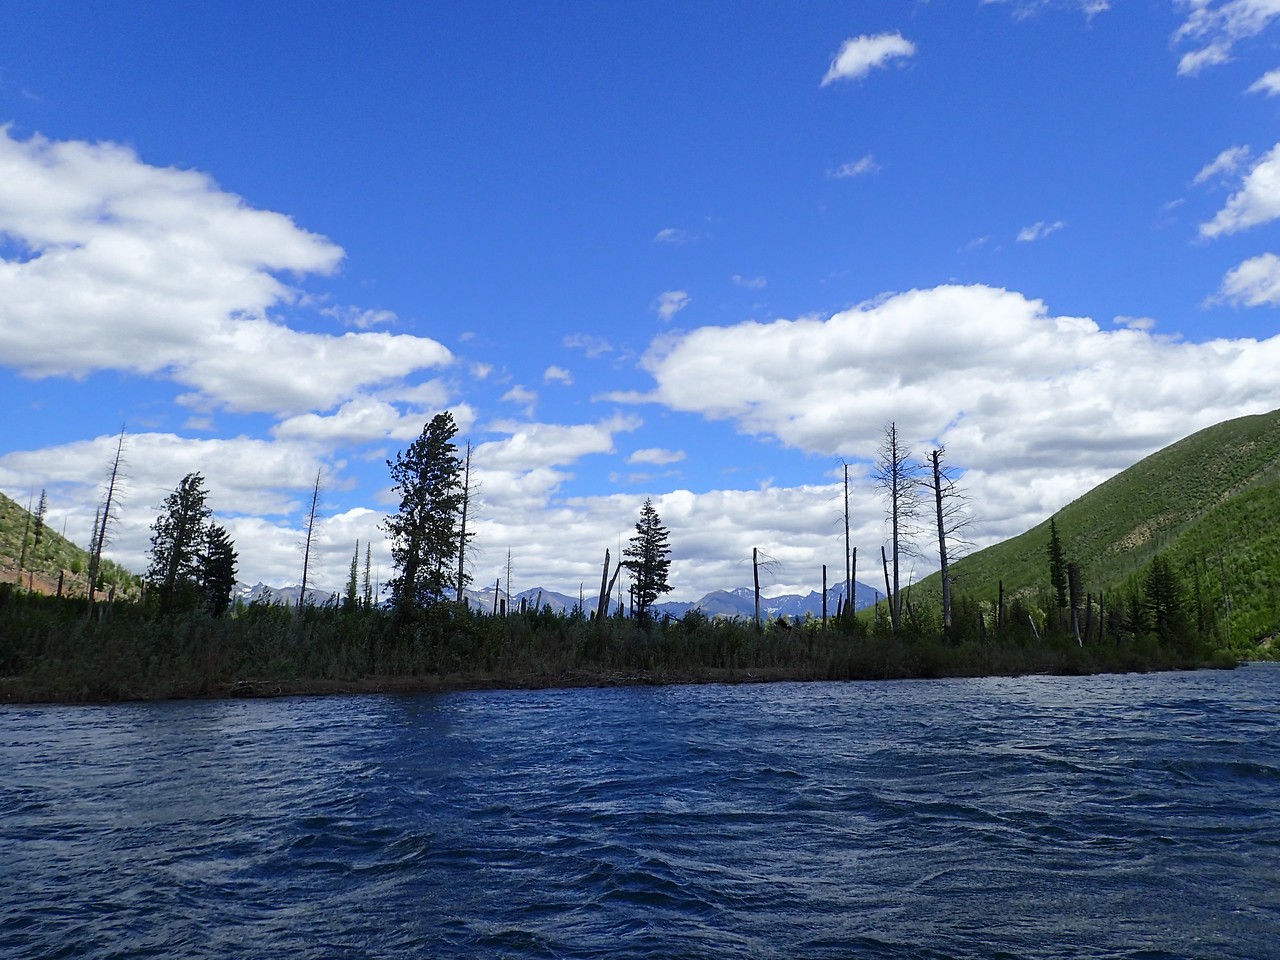 Floating the North Fork from Polebridge to Big Creek with Regi